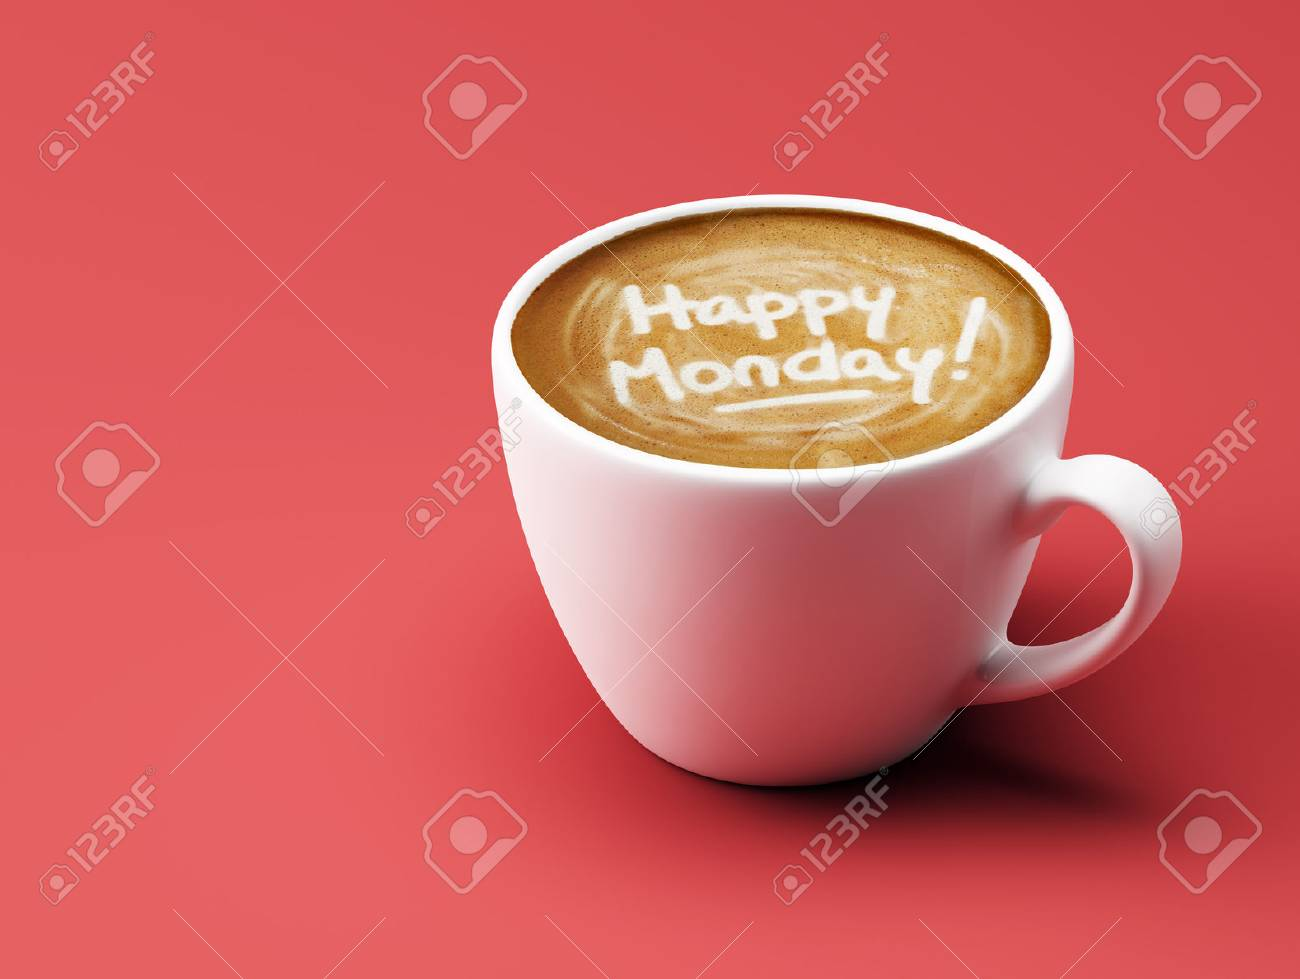 Happy Monday Coffee Cup Concept Isolated On Red Background Stock ... #mondayCoffee